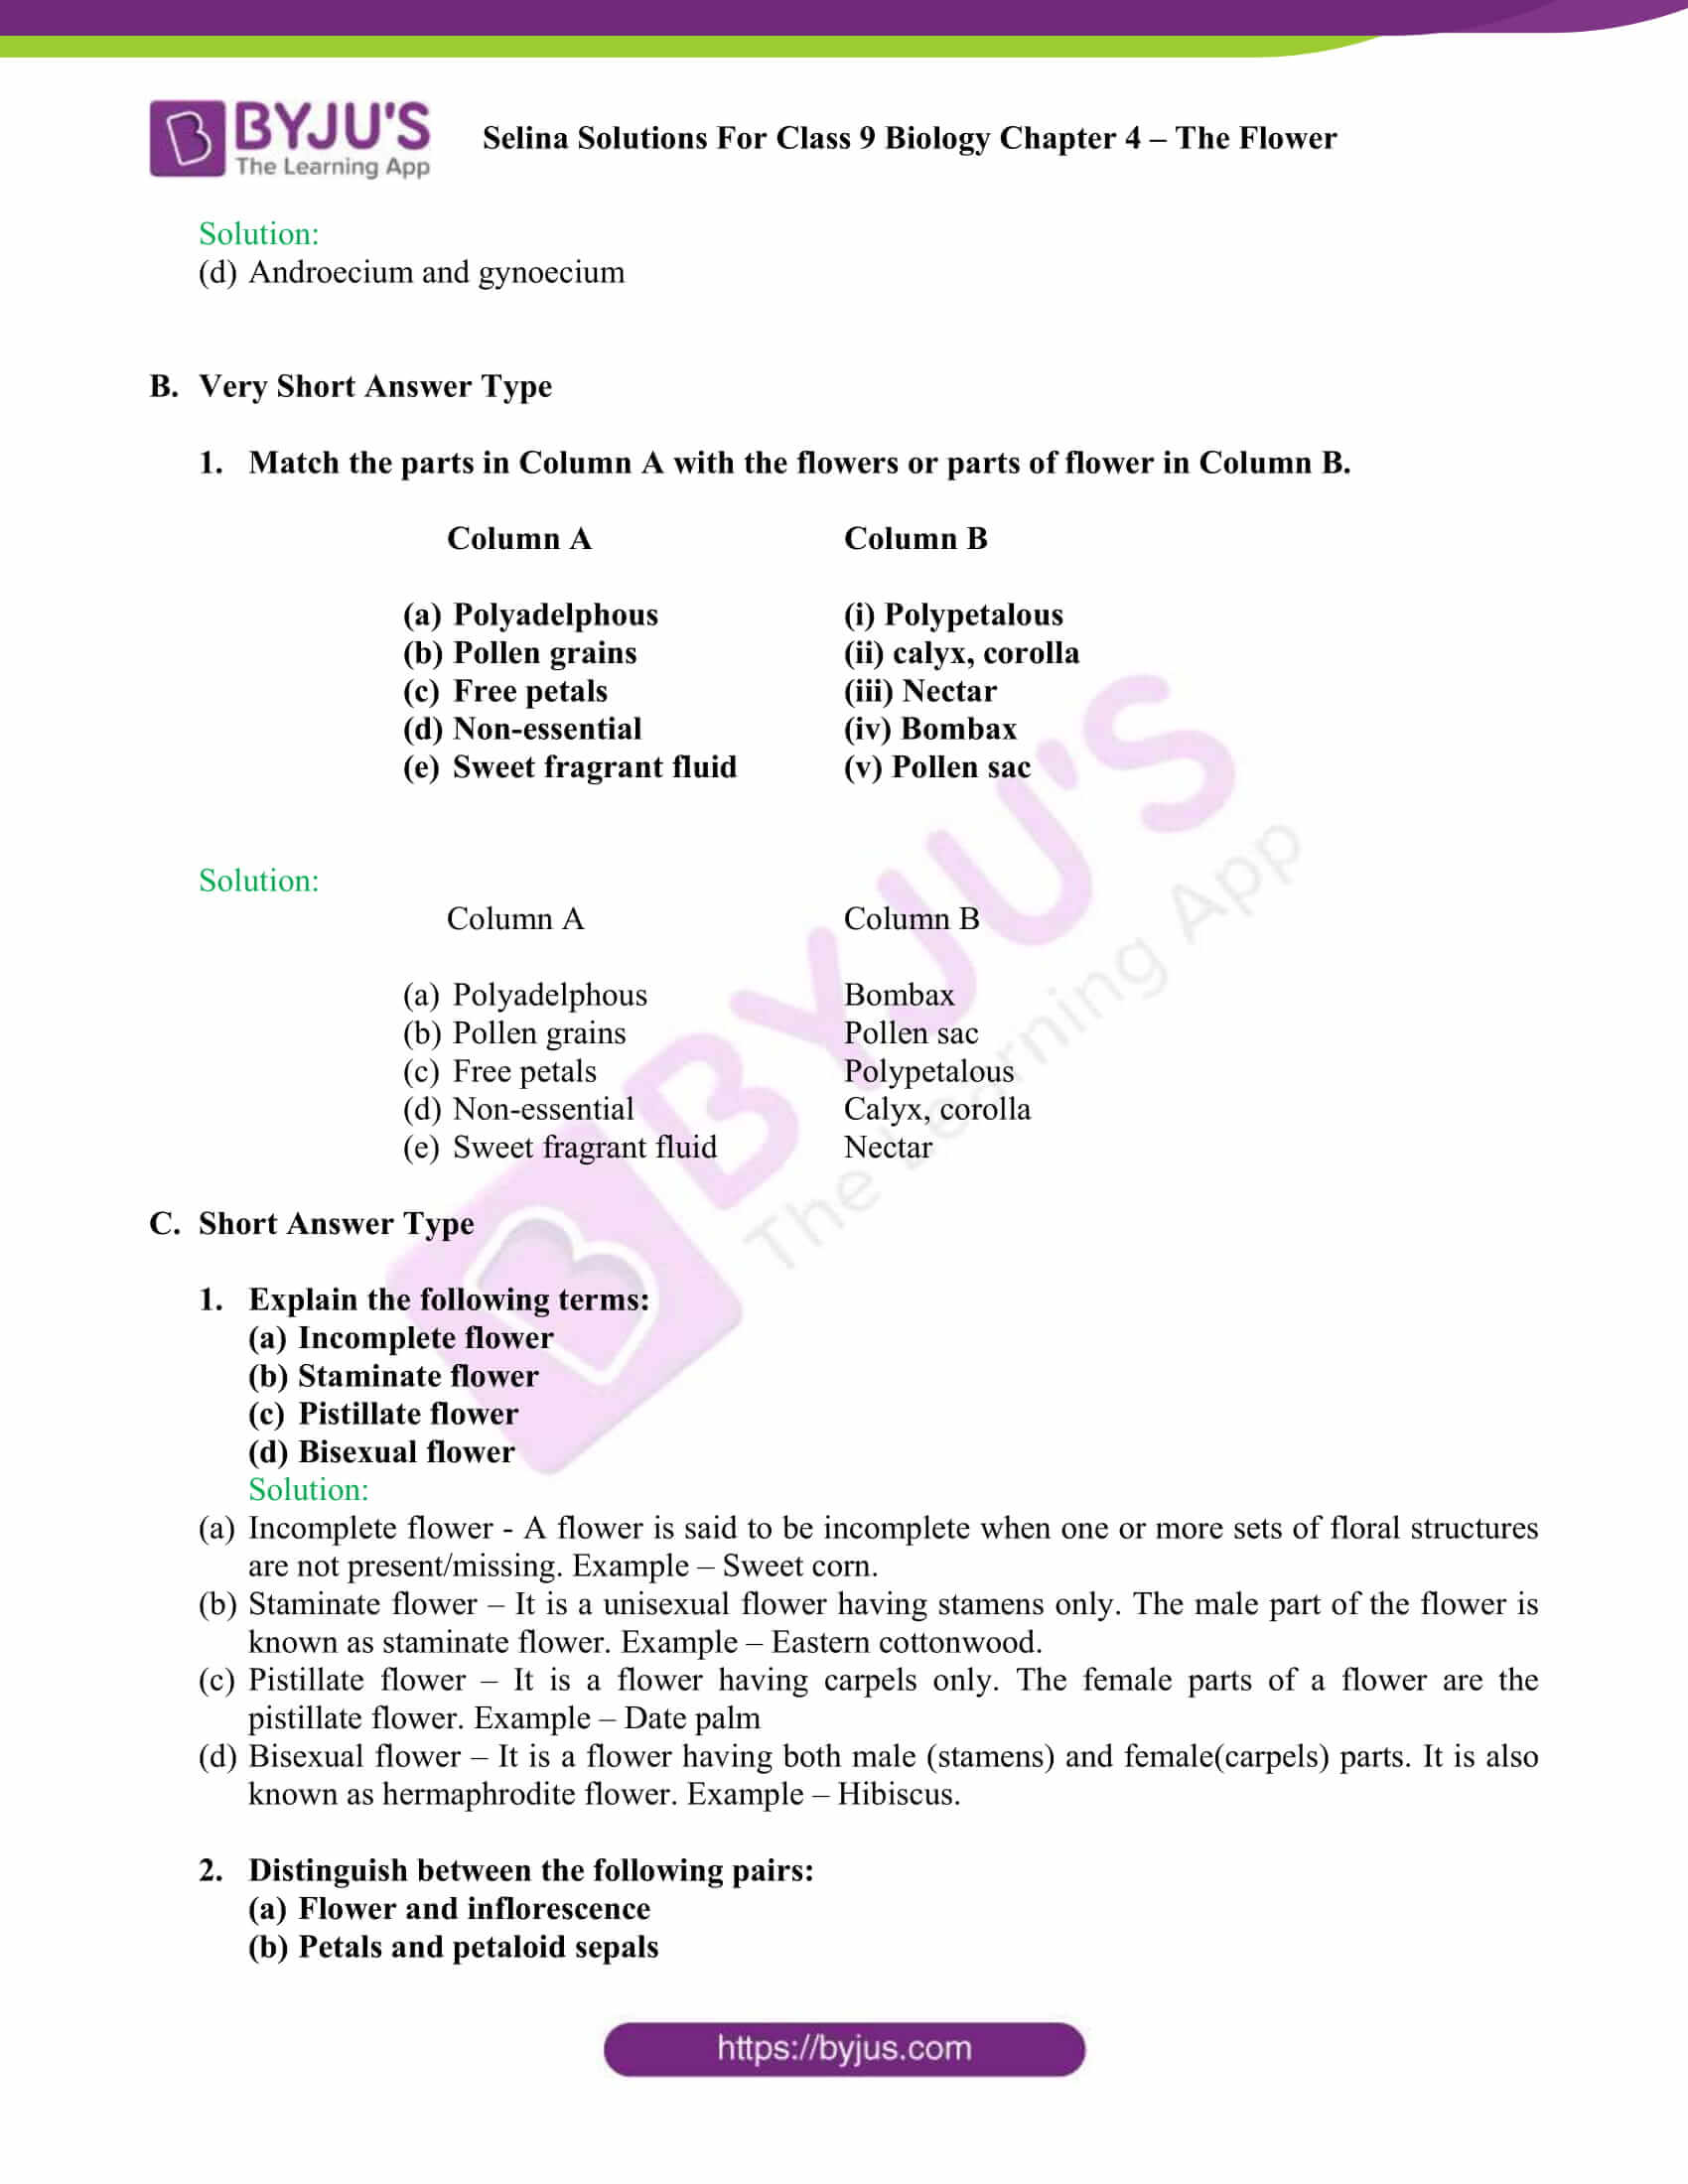 Selina Solutions For Class 9 Biology Chapter 4 The Flower part 3